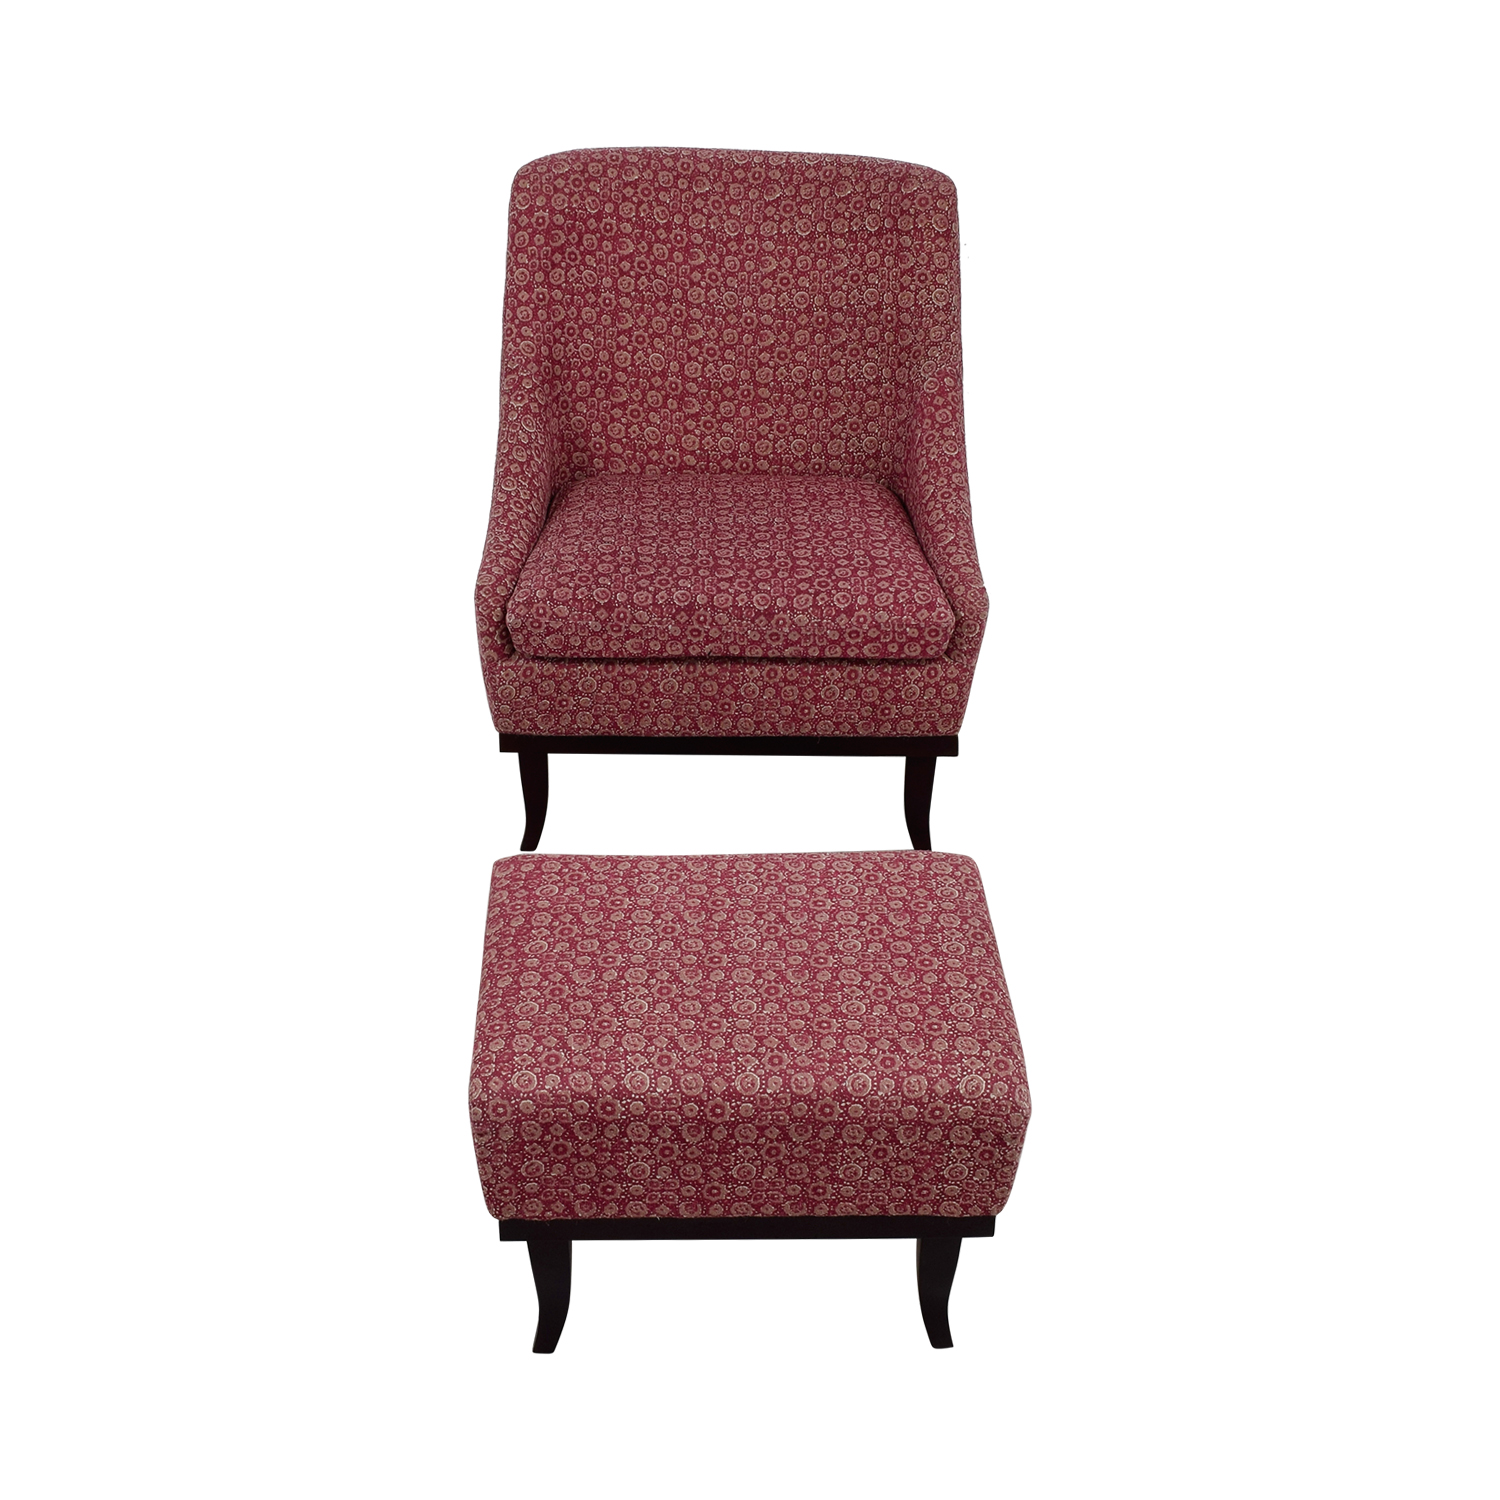 Manor and Mews Manor and Mews Cary Burgundy Armchair with Footstool for sale